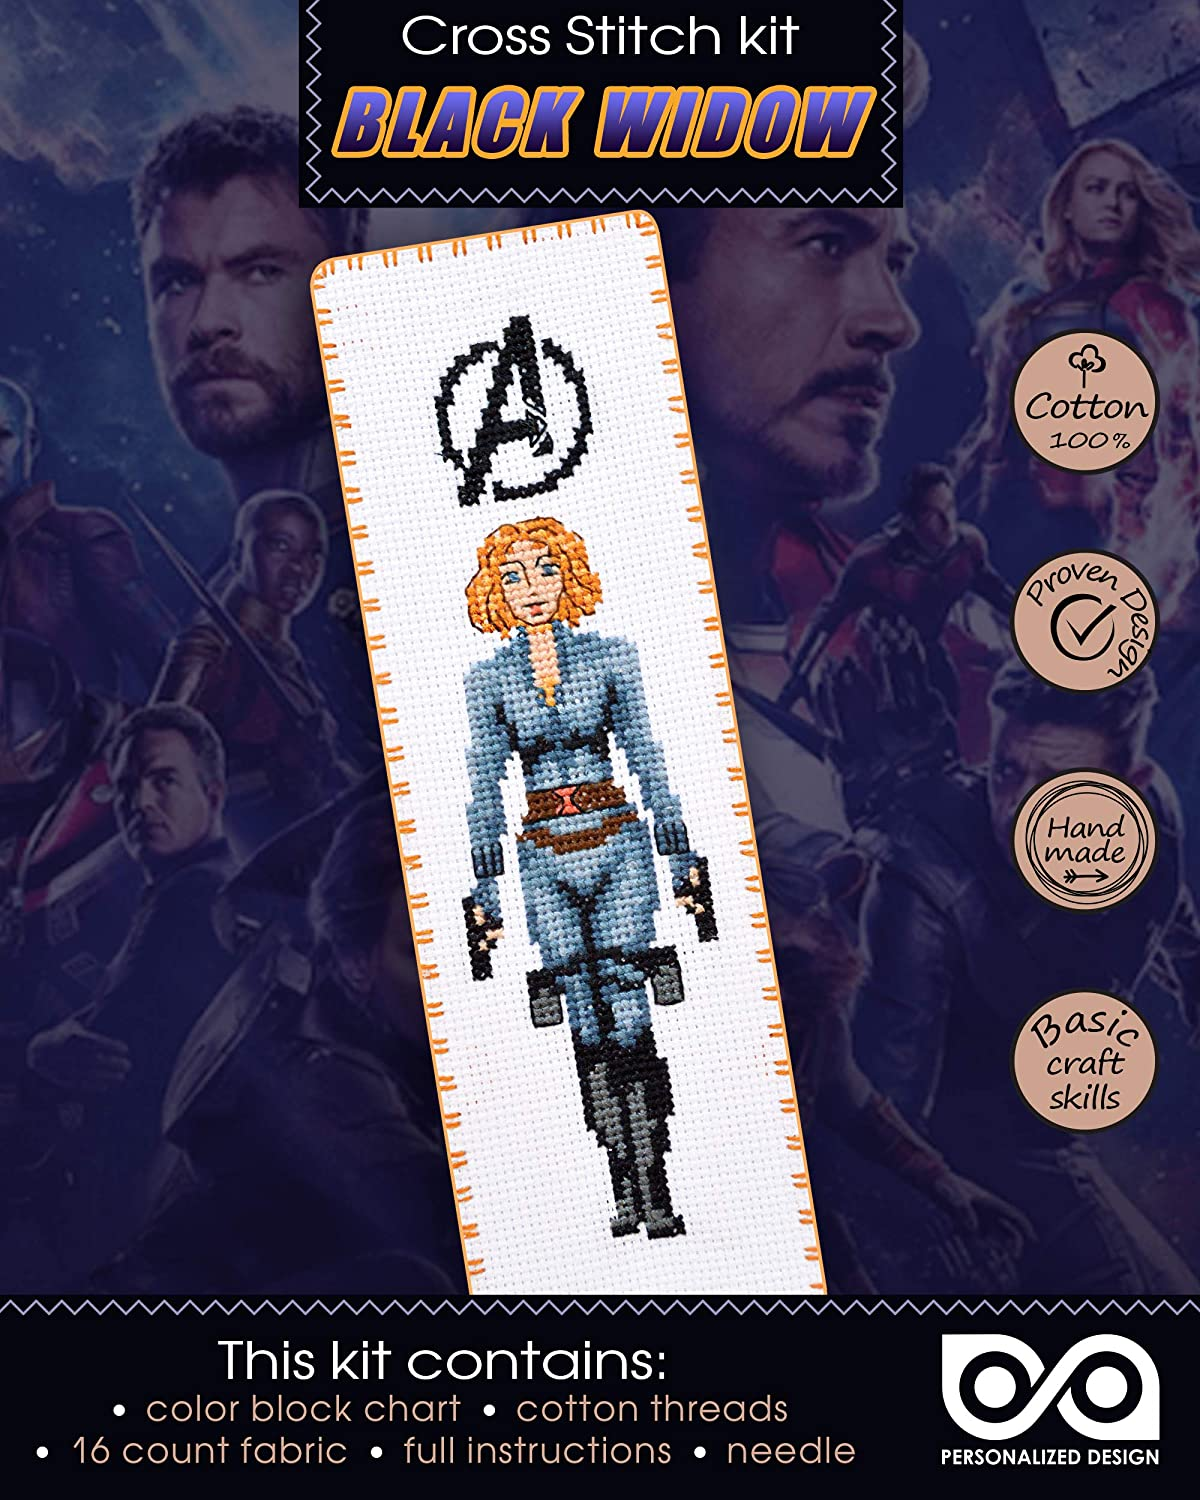 'The Avengers: Black Widow' Embroidery Kit for DIY At the price of surprise Cross Stitch Popular shop is the lowest price challenge